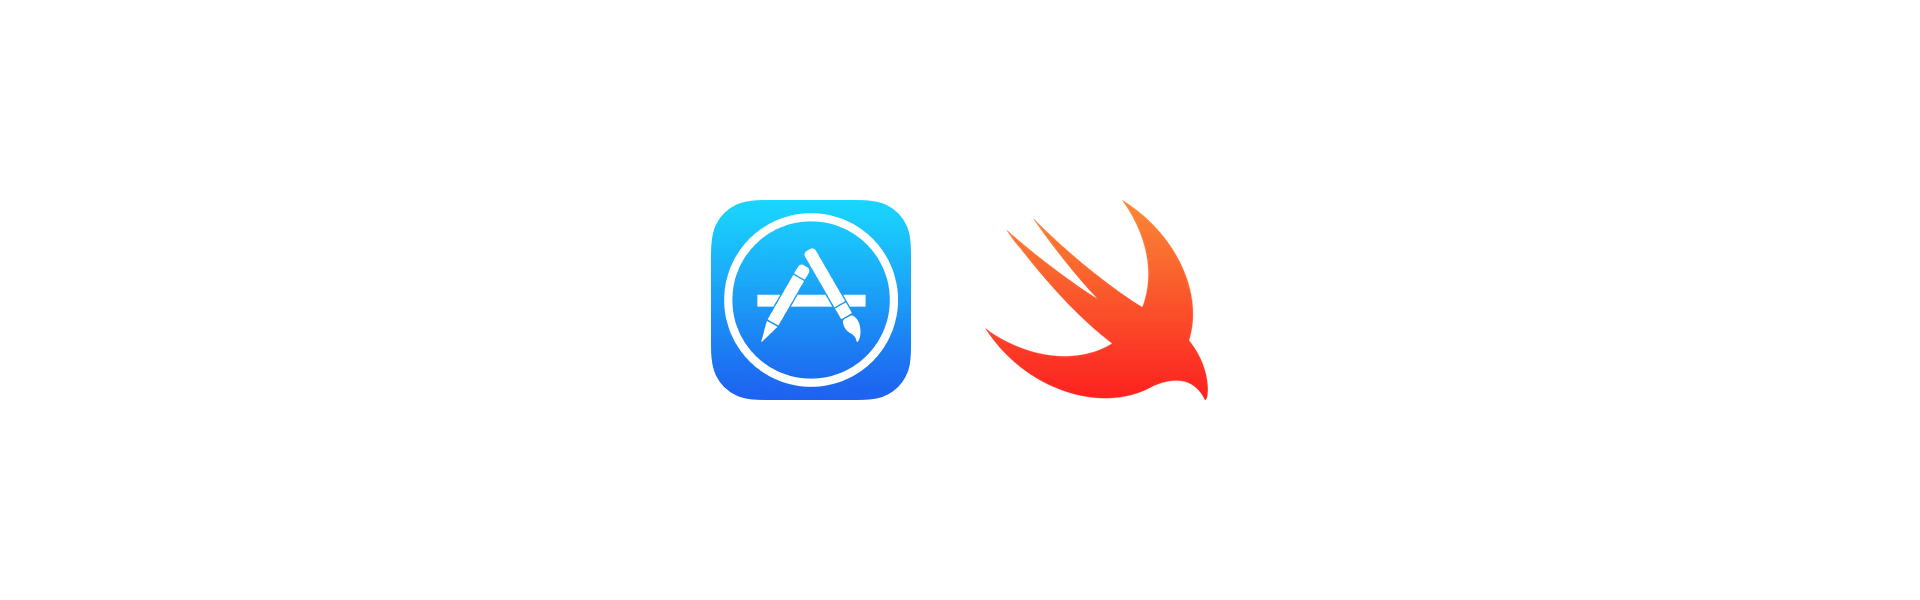 The App Store and Swift logos